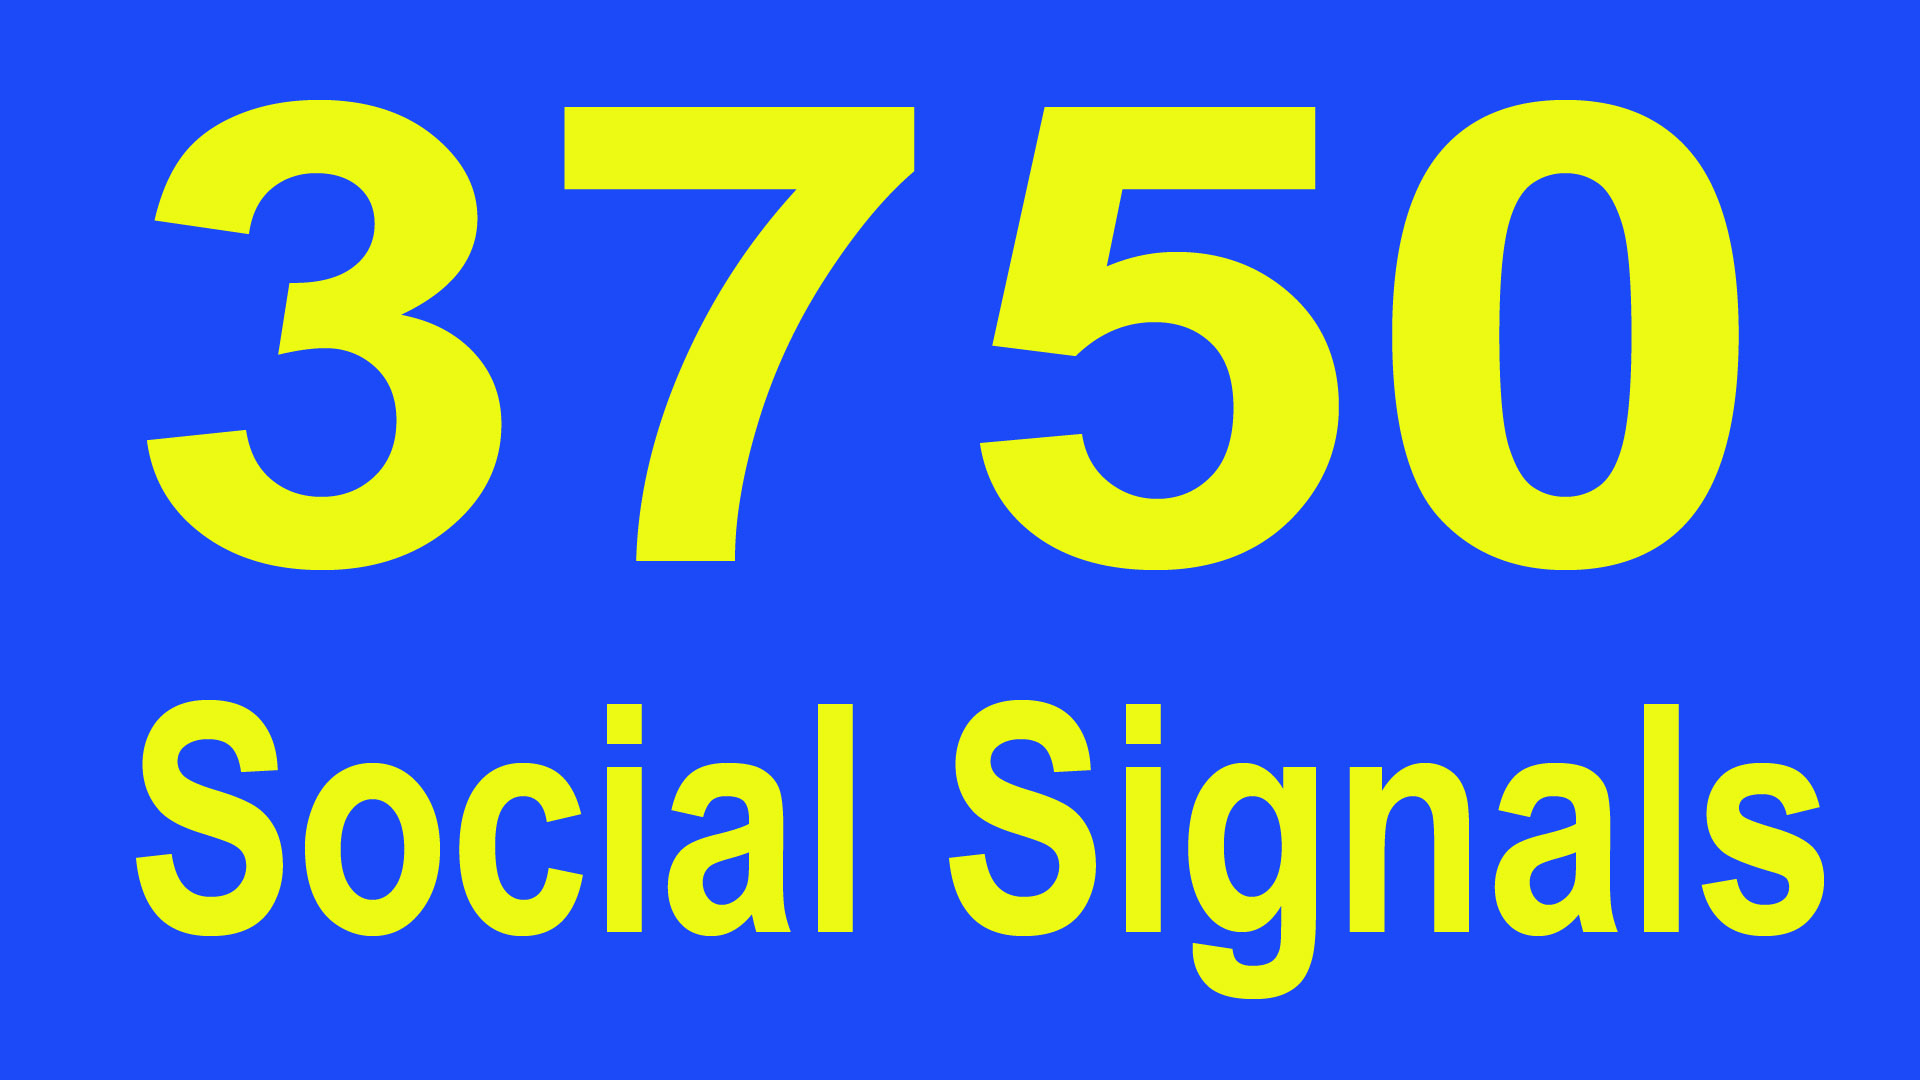 Powerfully built 3750 Social Shares Signals to heavy ...